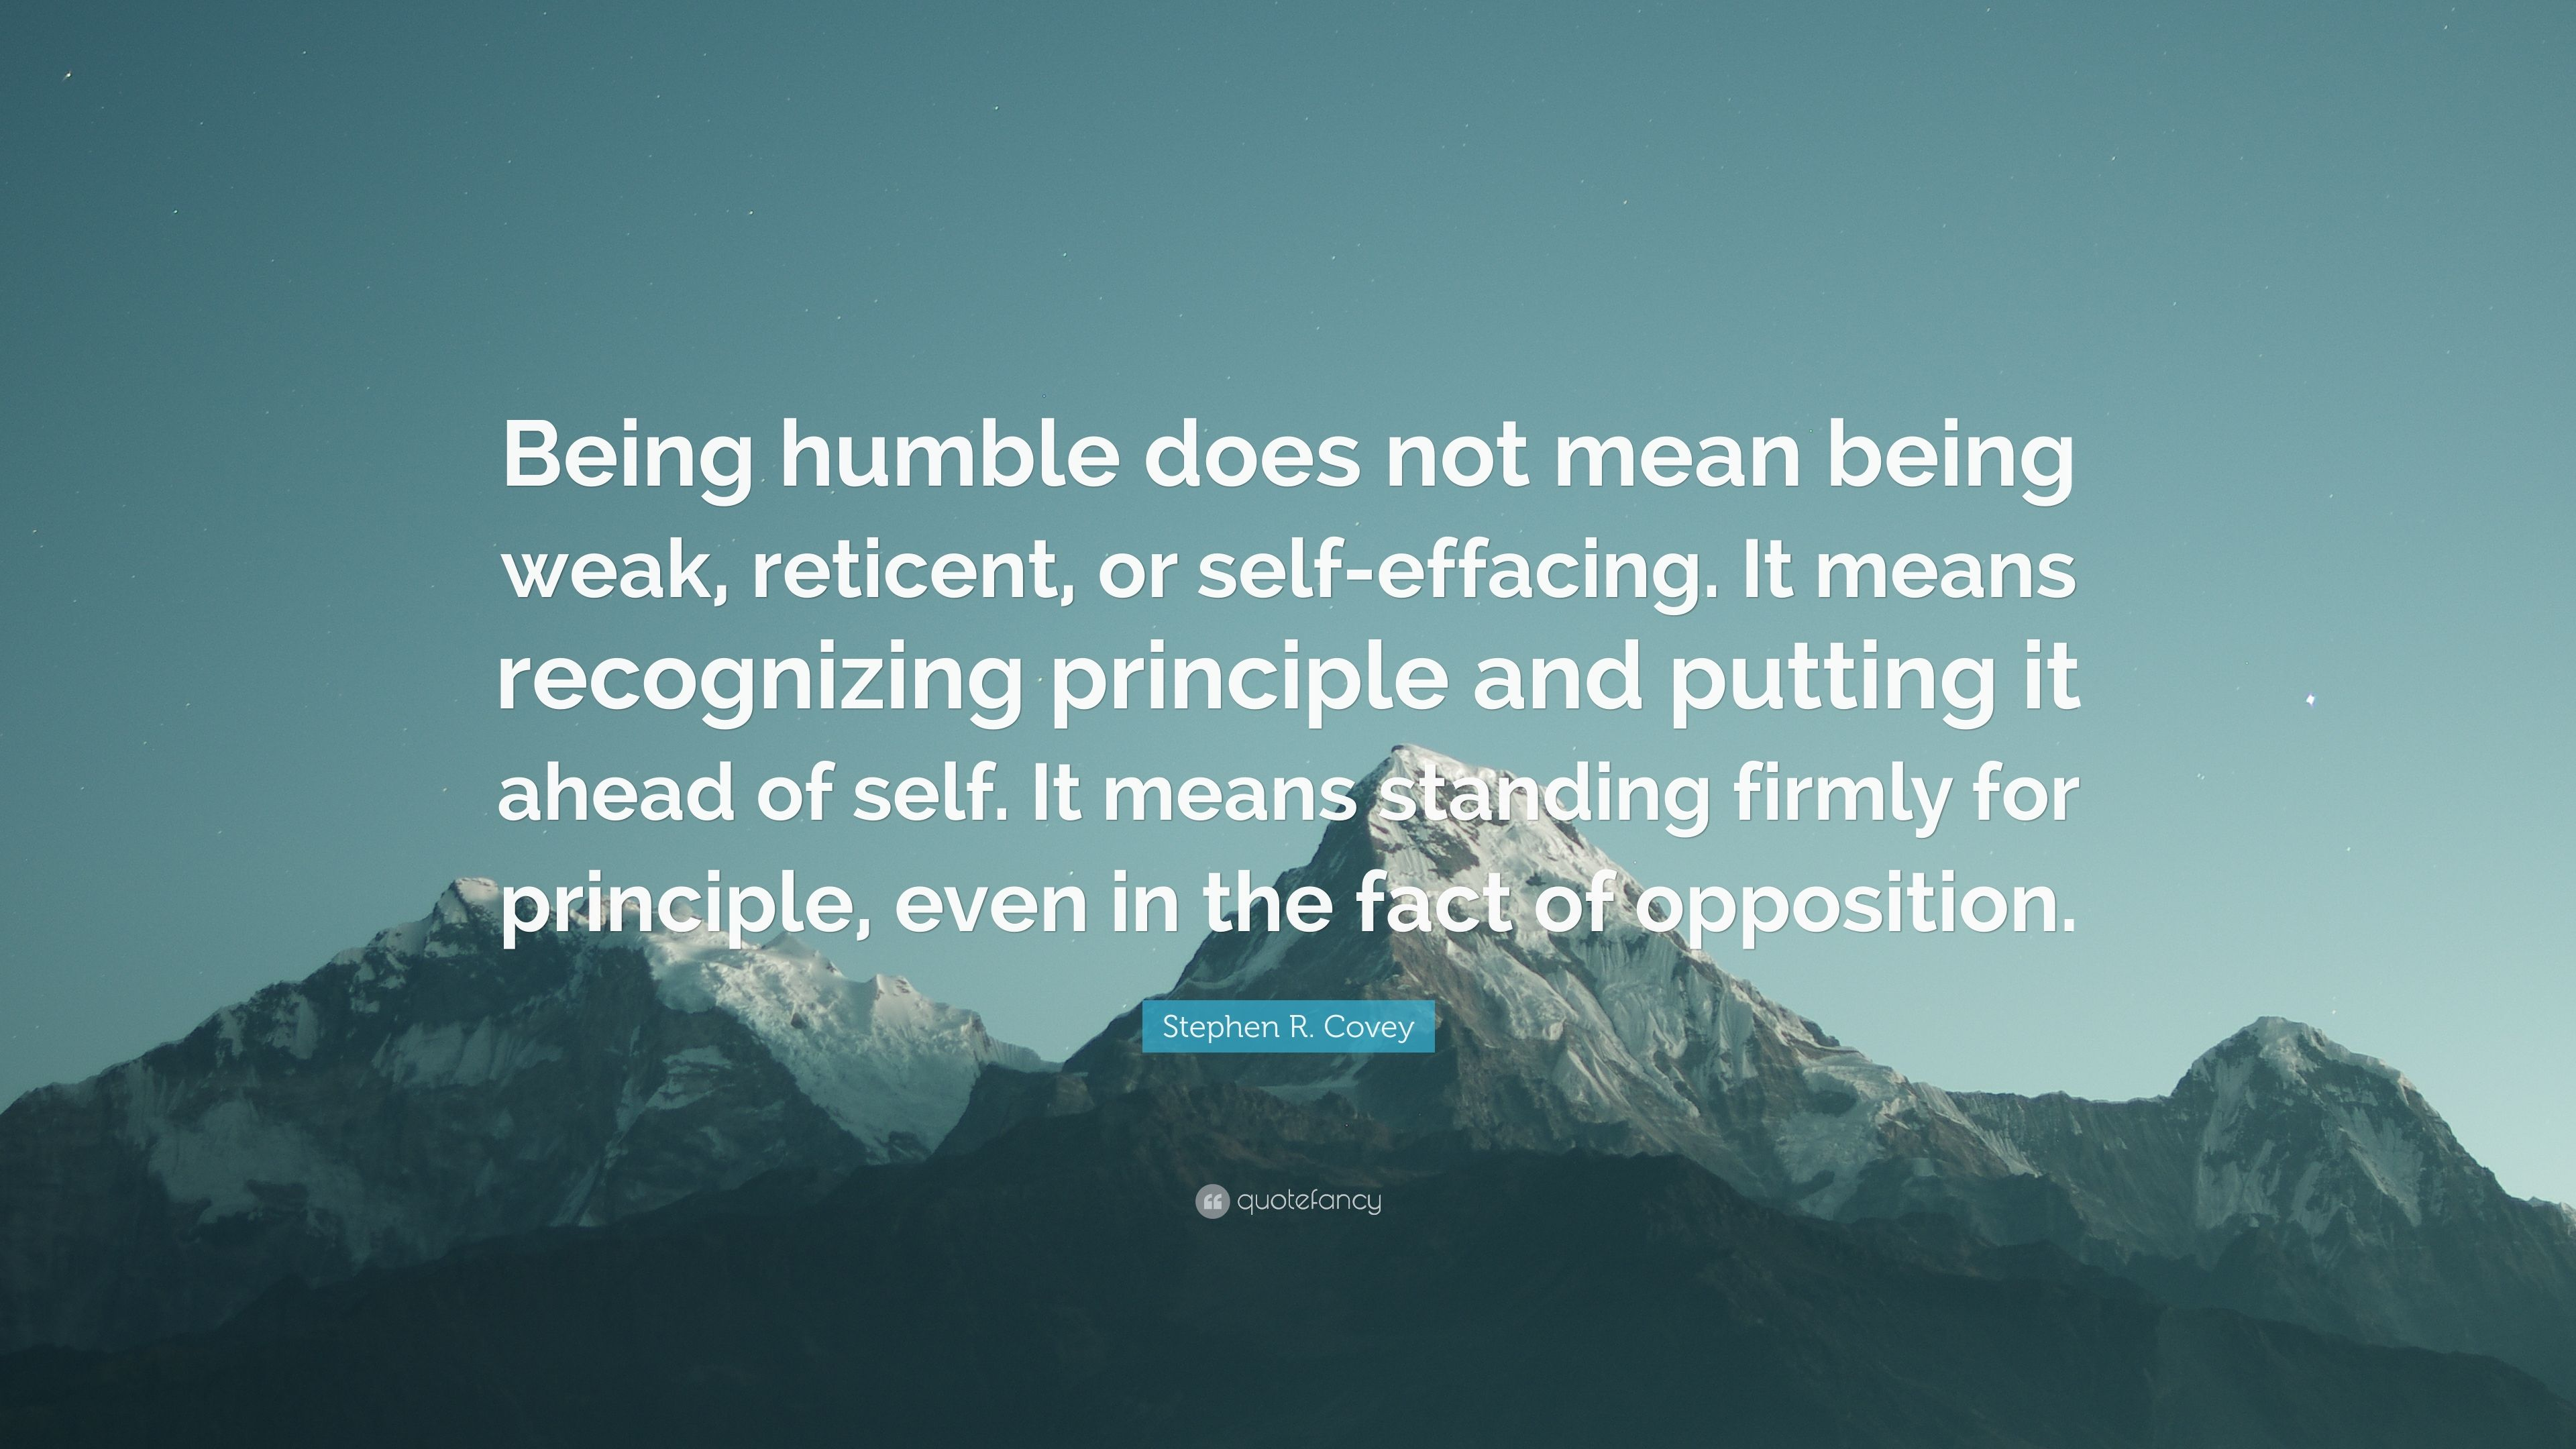 Quotes About Being Humble | Stephen R Covey Quote Being Humble Does Not Mean Being Weak